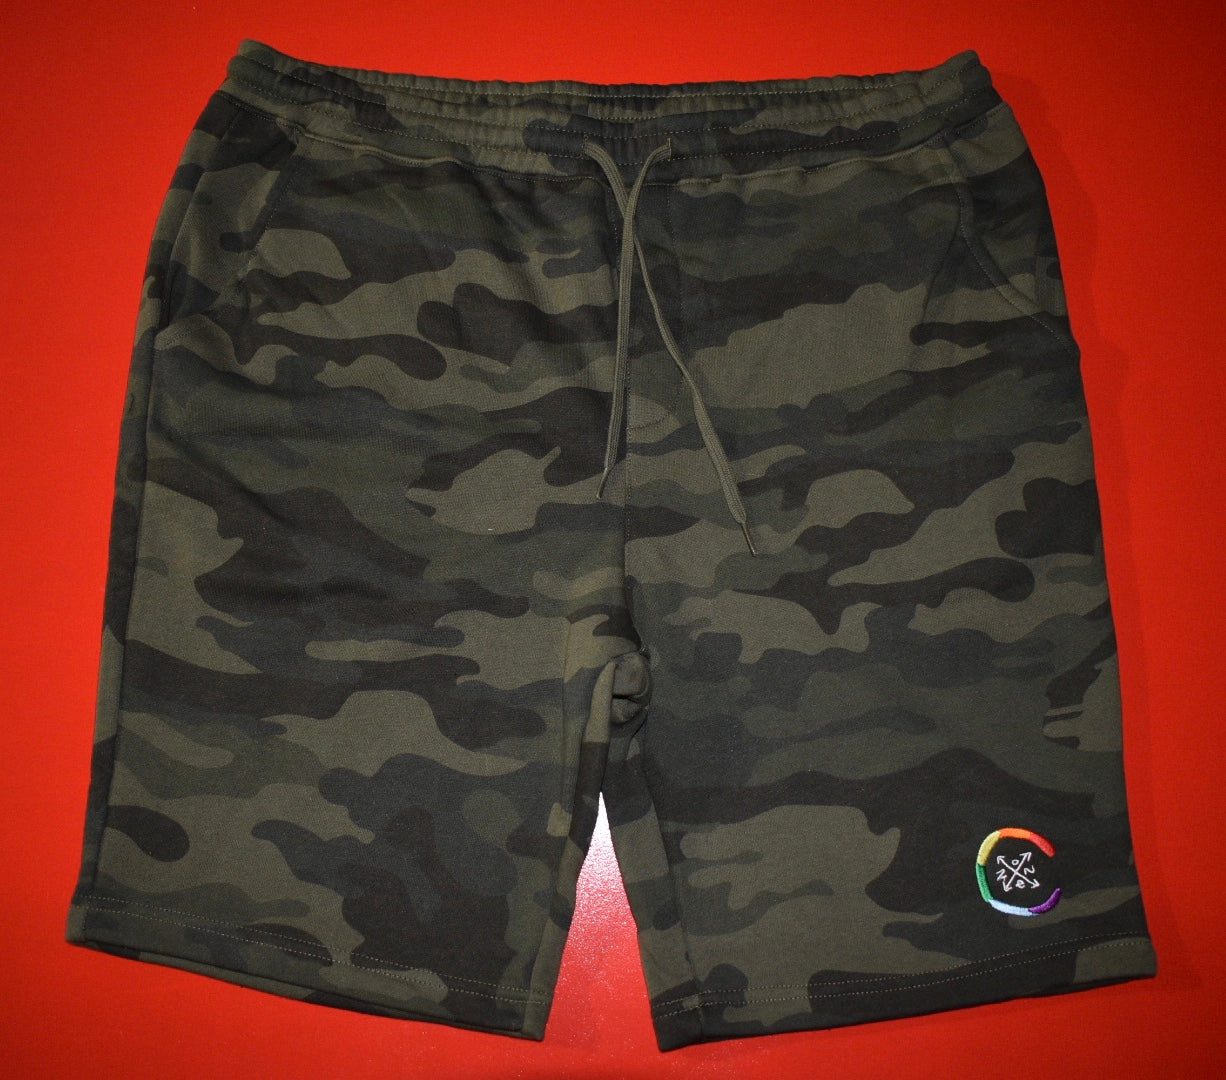 Comfort Zone Sweat Shorts - Camo